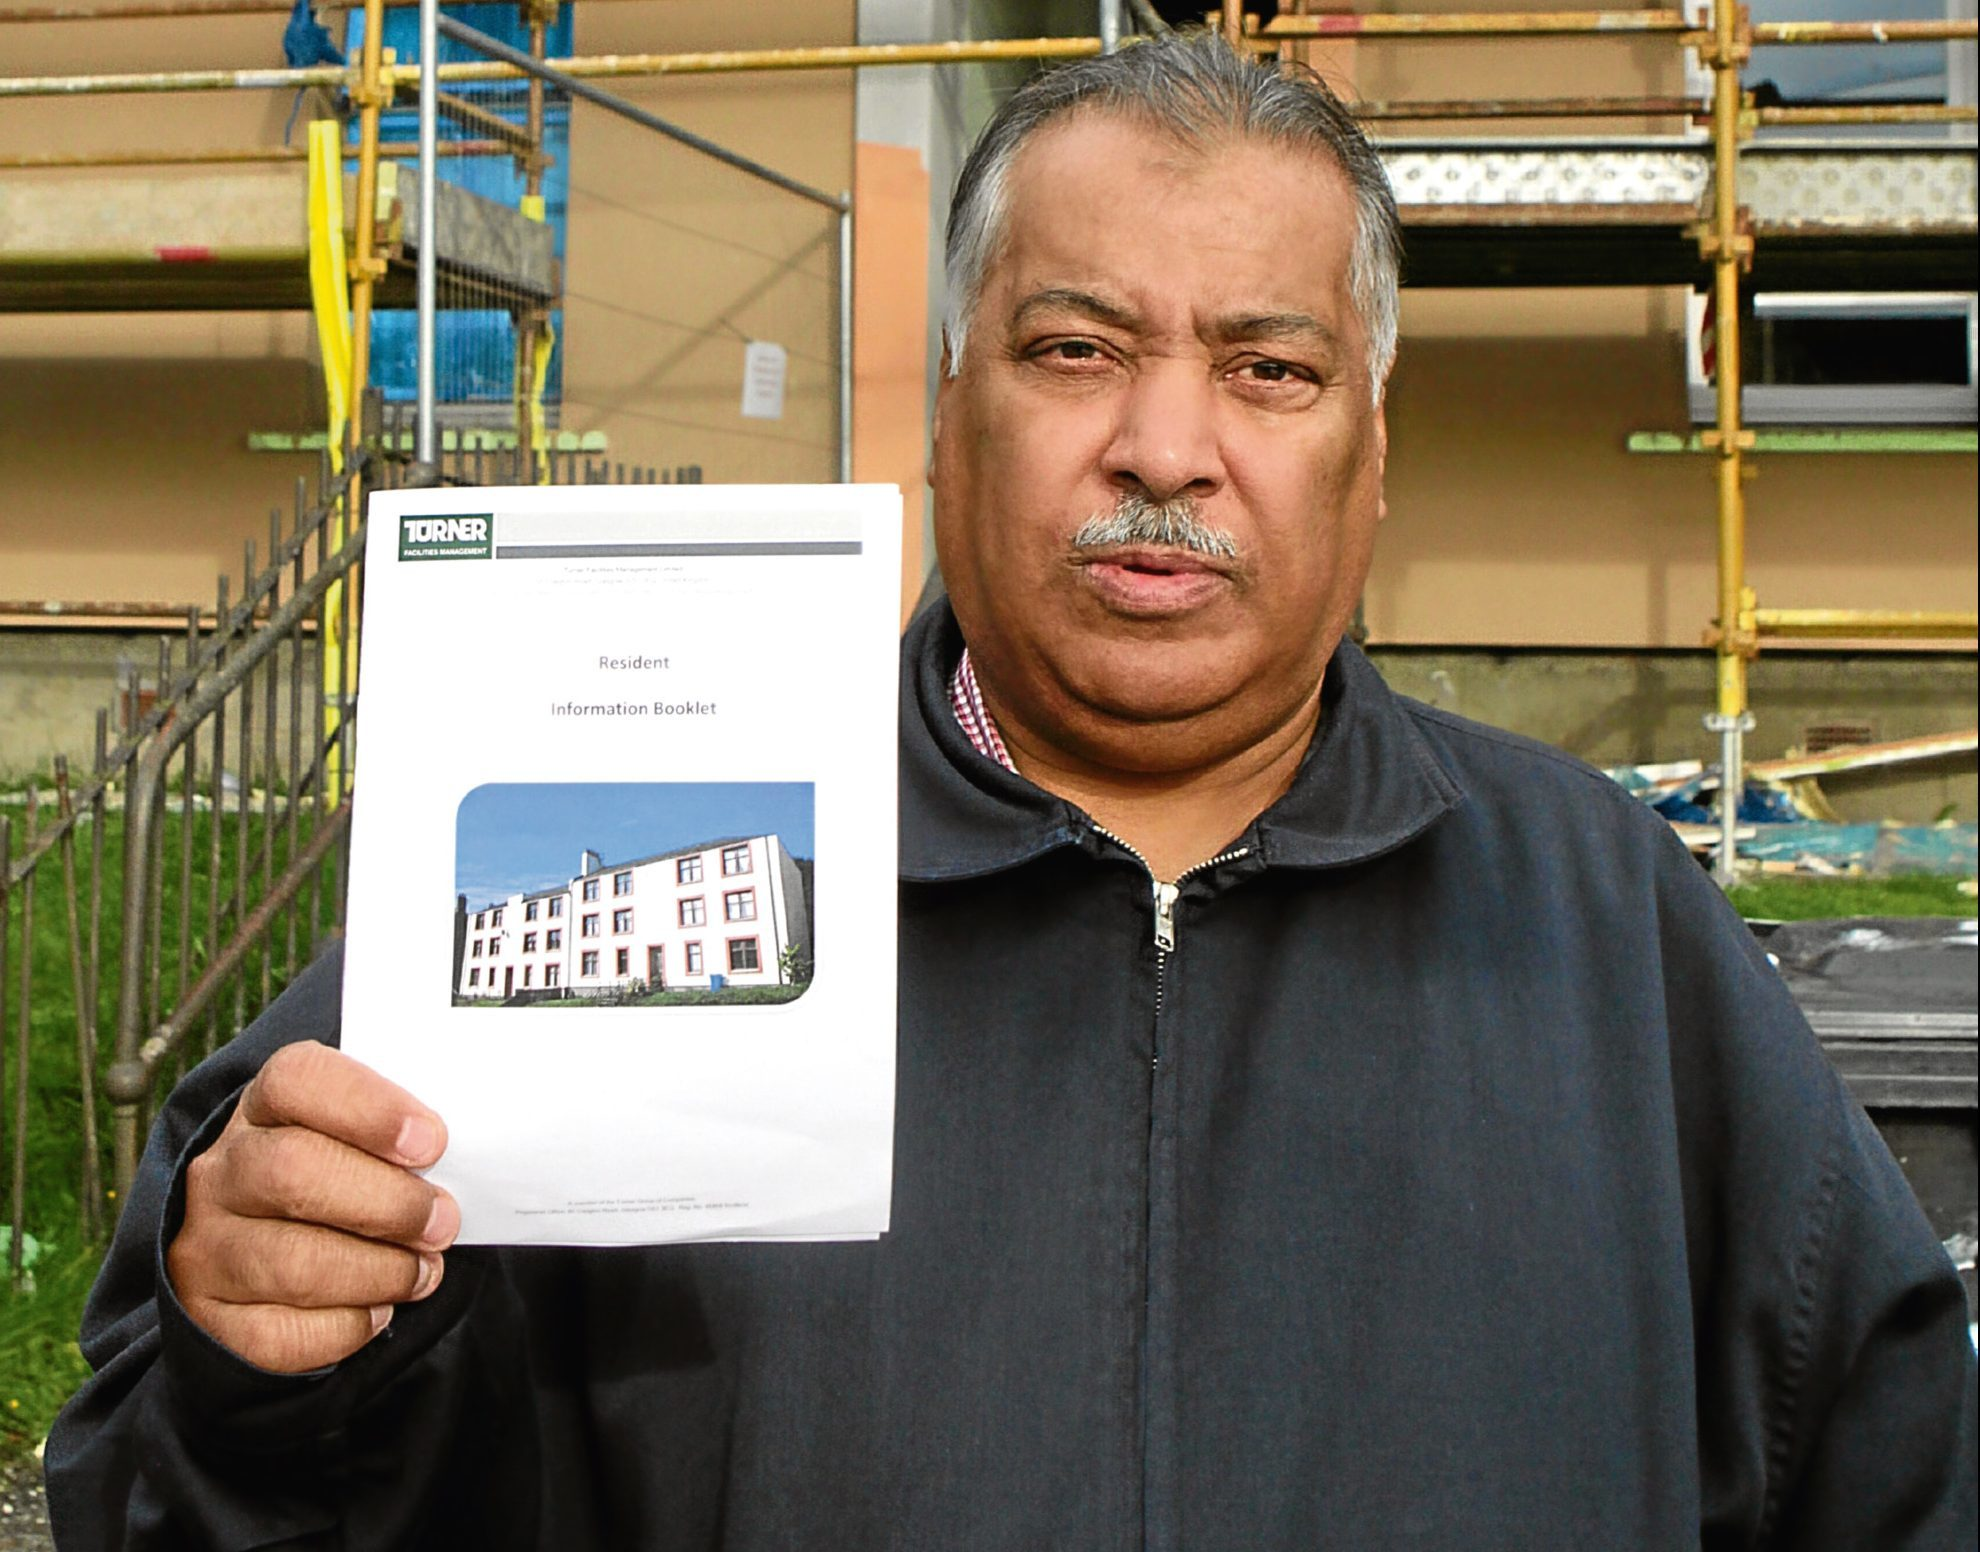 Mohammed Aslem was so disappointed with the colour scheme he started a petition bidding to have it changed.